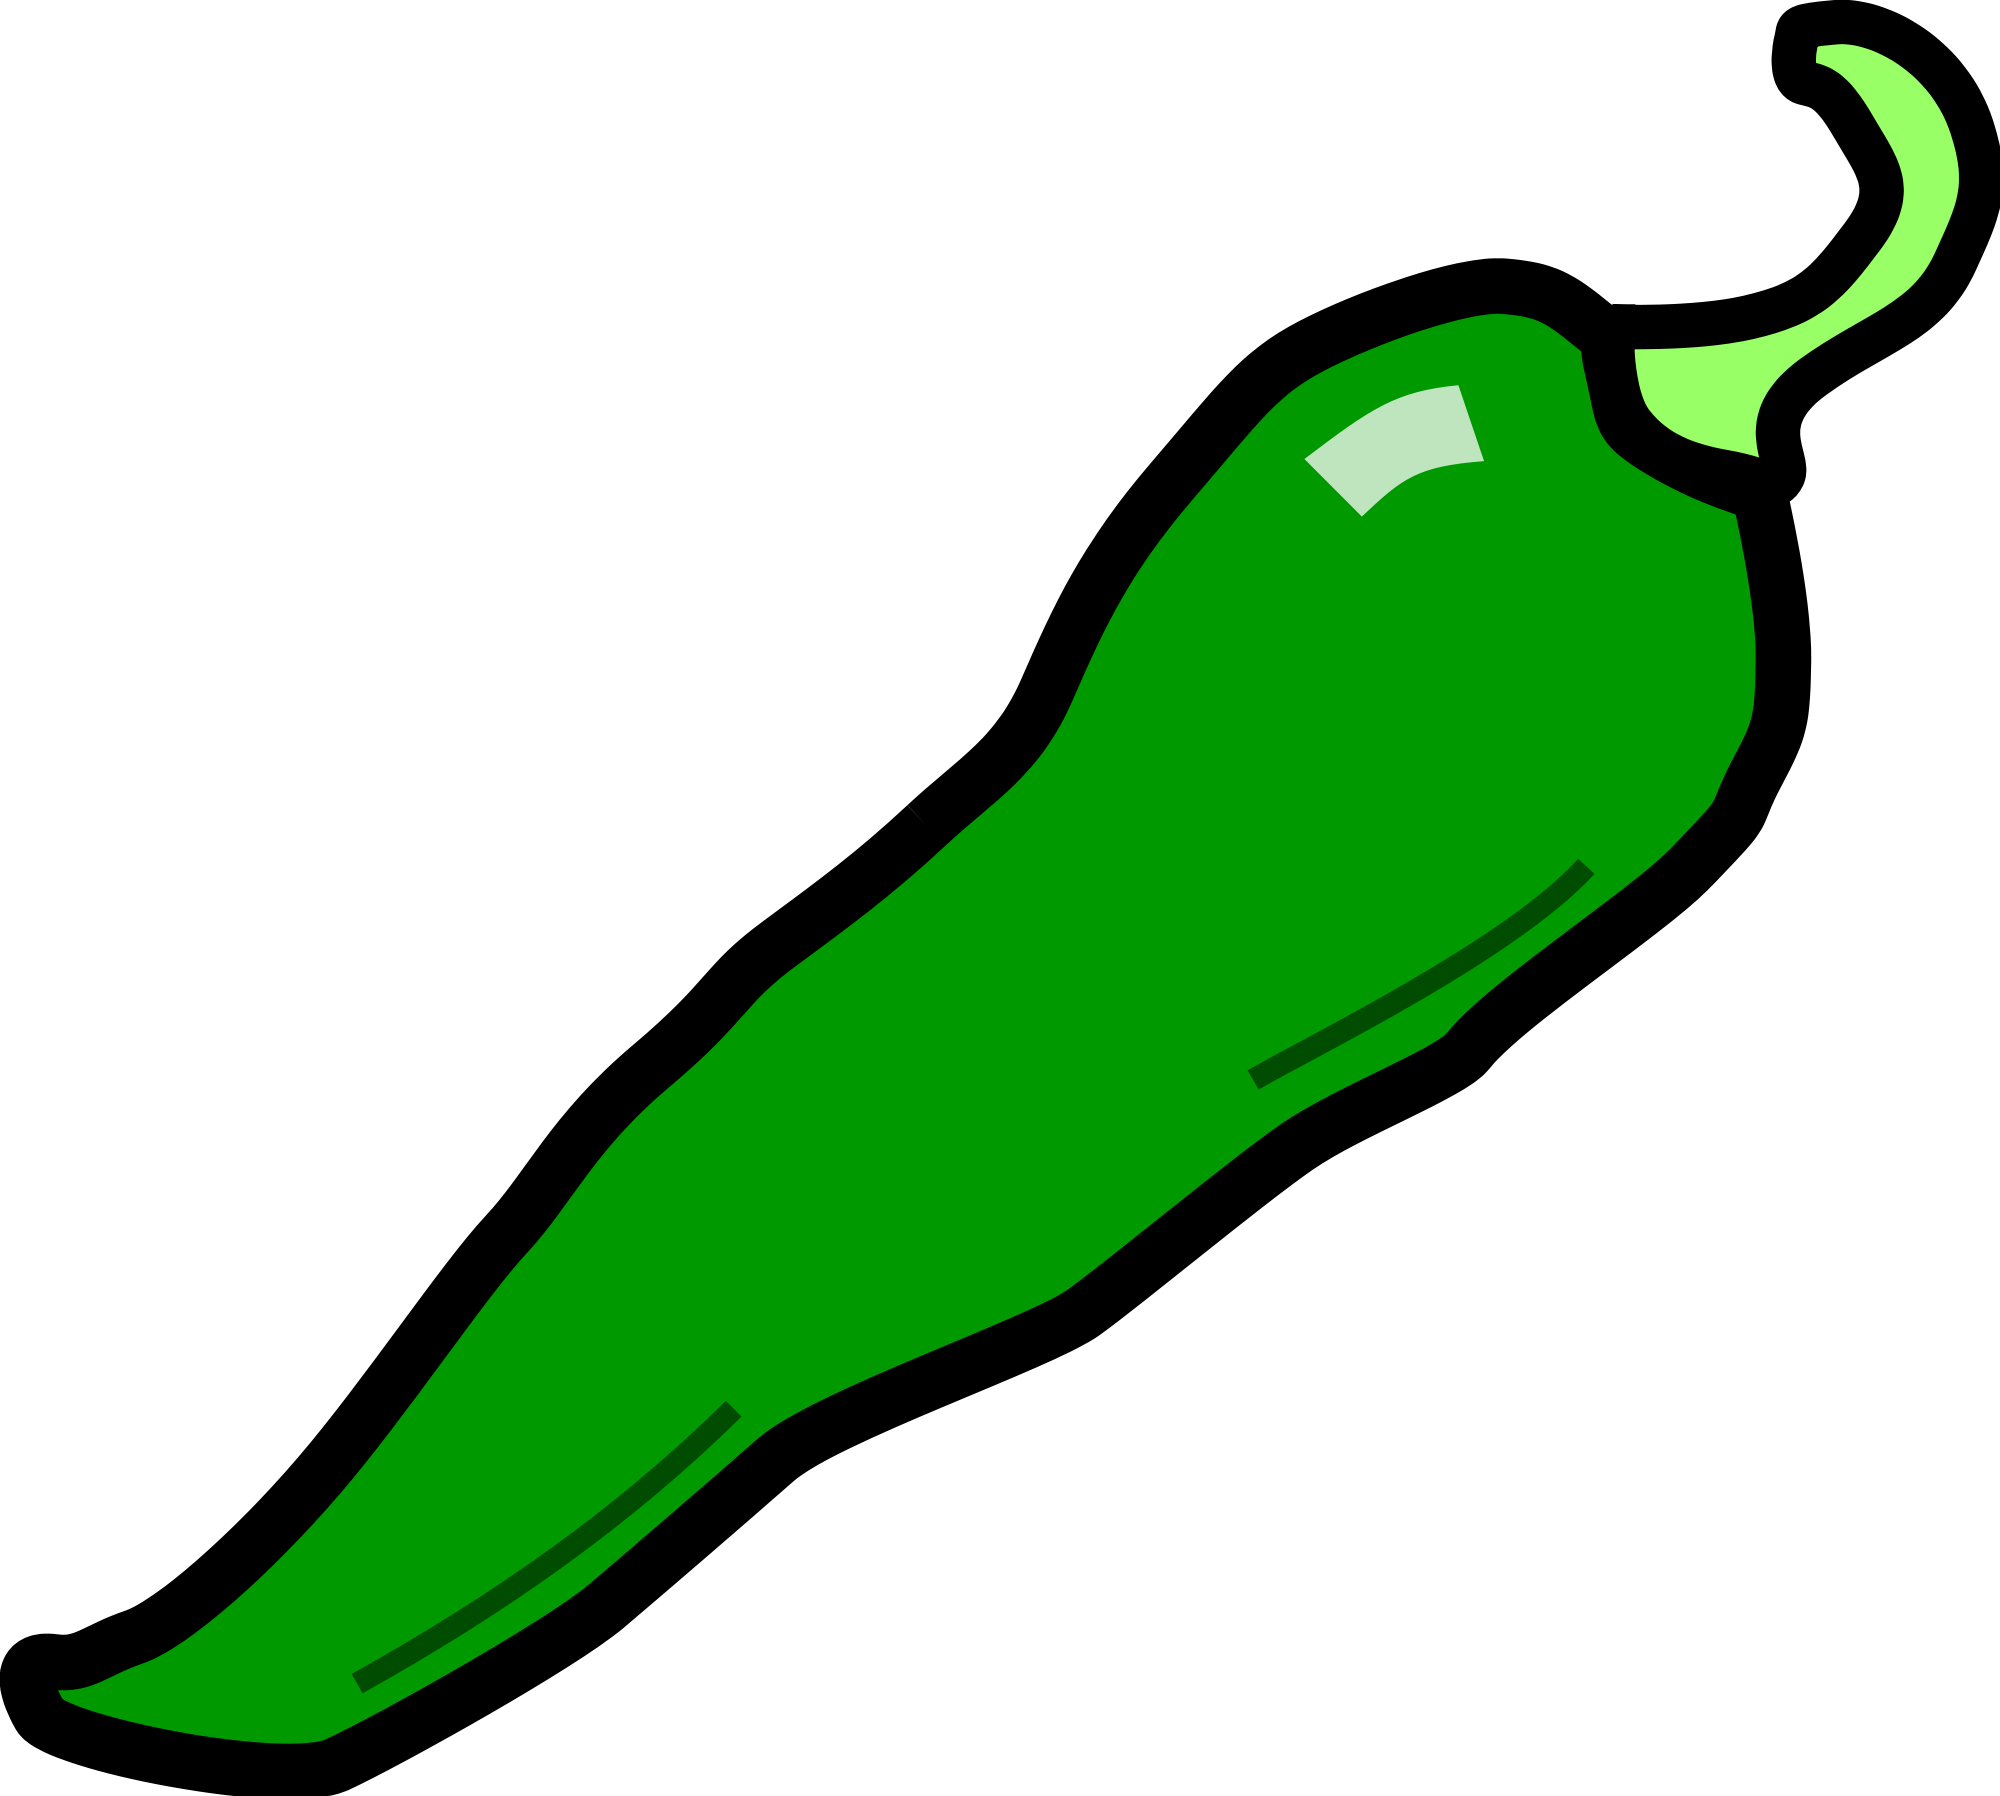 Free Chili Clip Art Pictures.